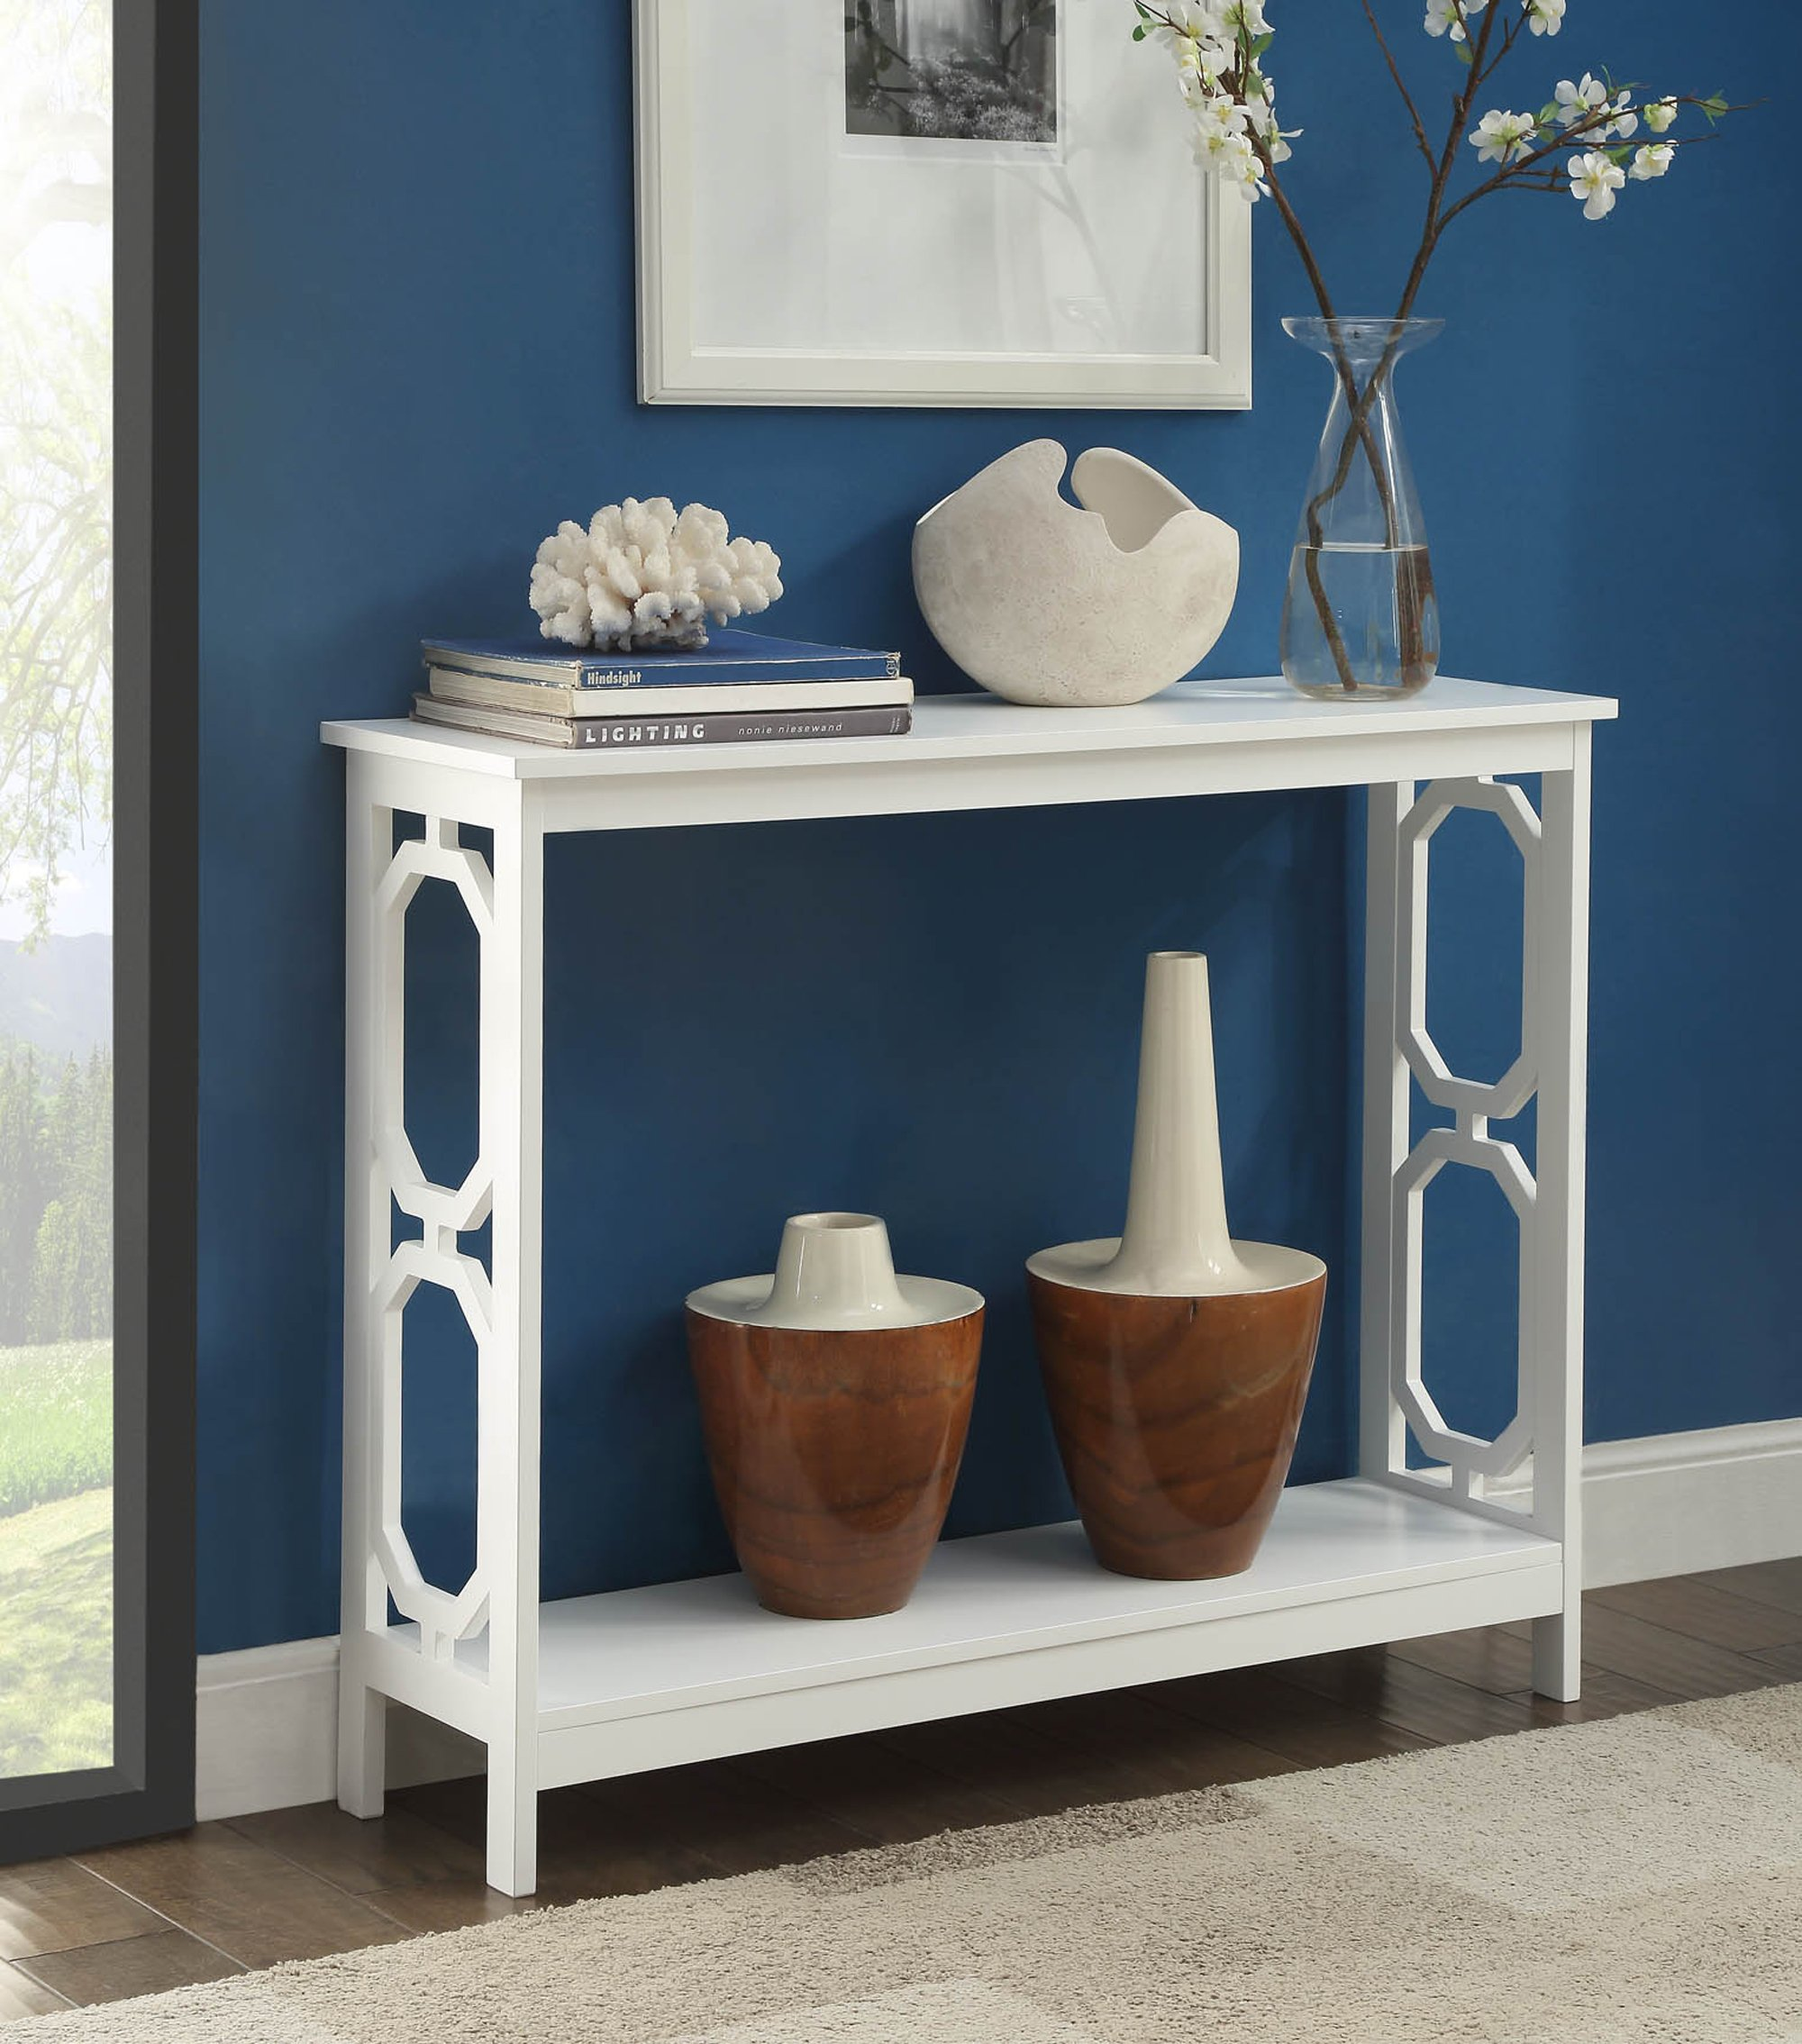 Convenience Concepts Omega Console Table, White by Convenience Concepts (Image #3)